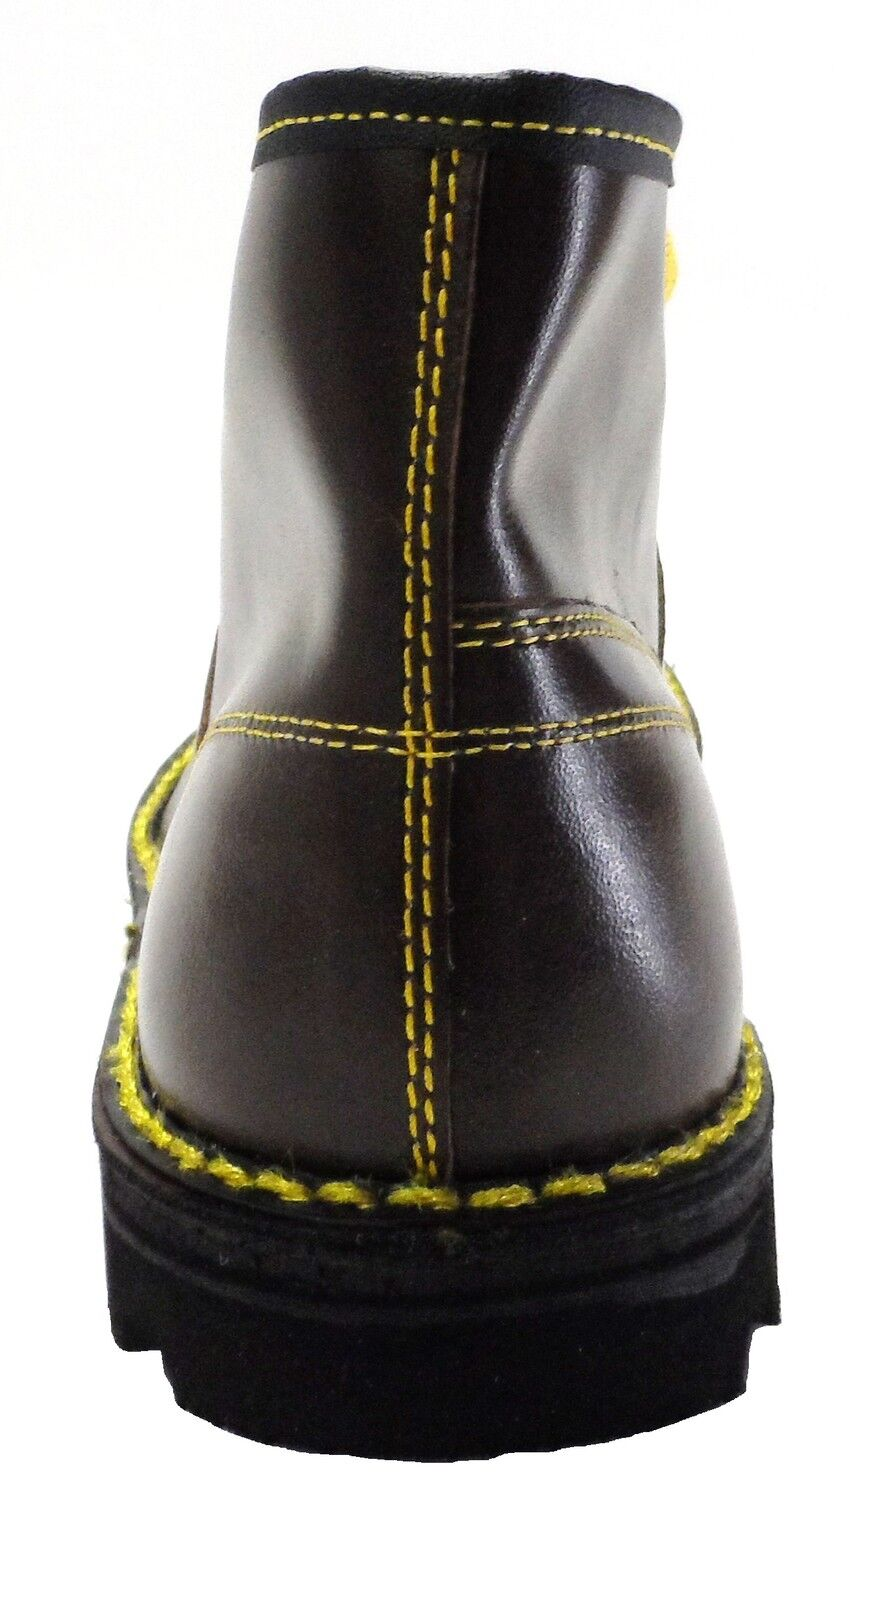 ORIGINAL 1970's Style Oxblood Pelle Monkey Boots Boots Boots 1849f7